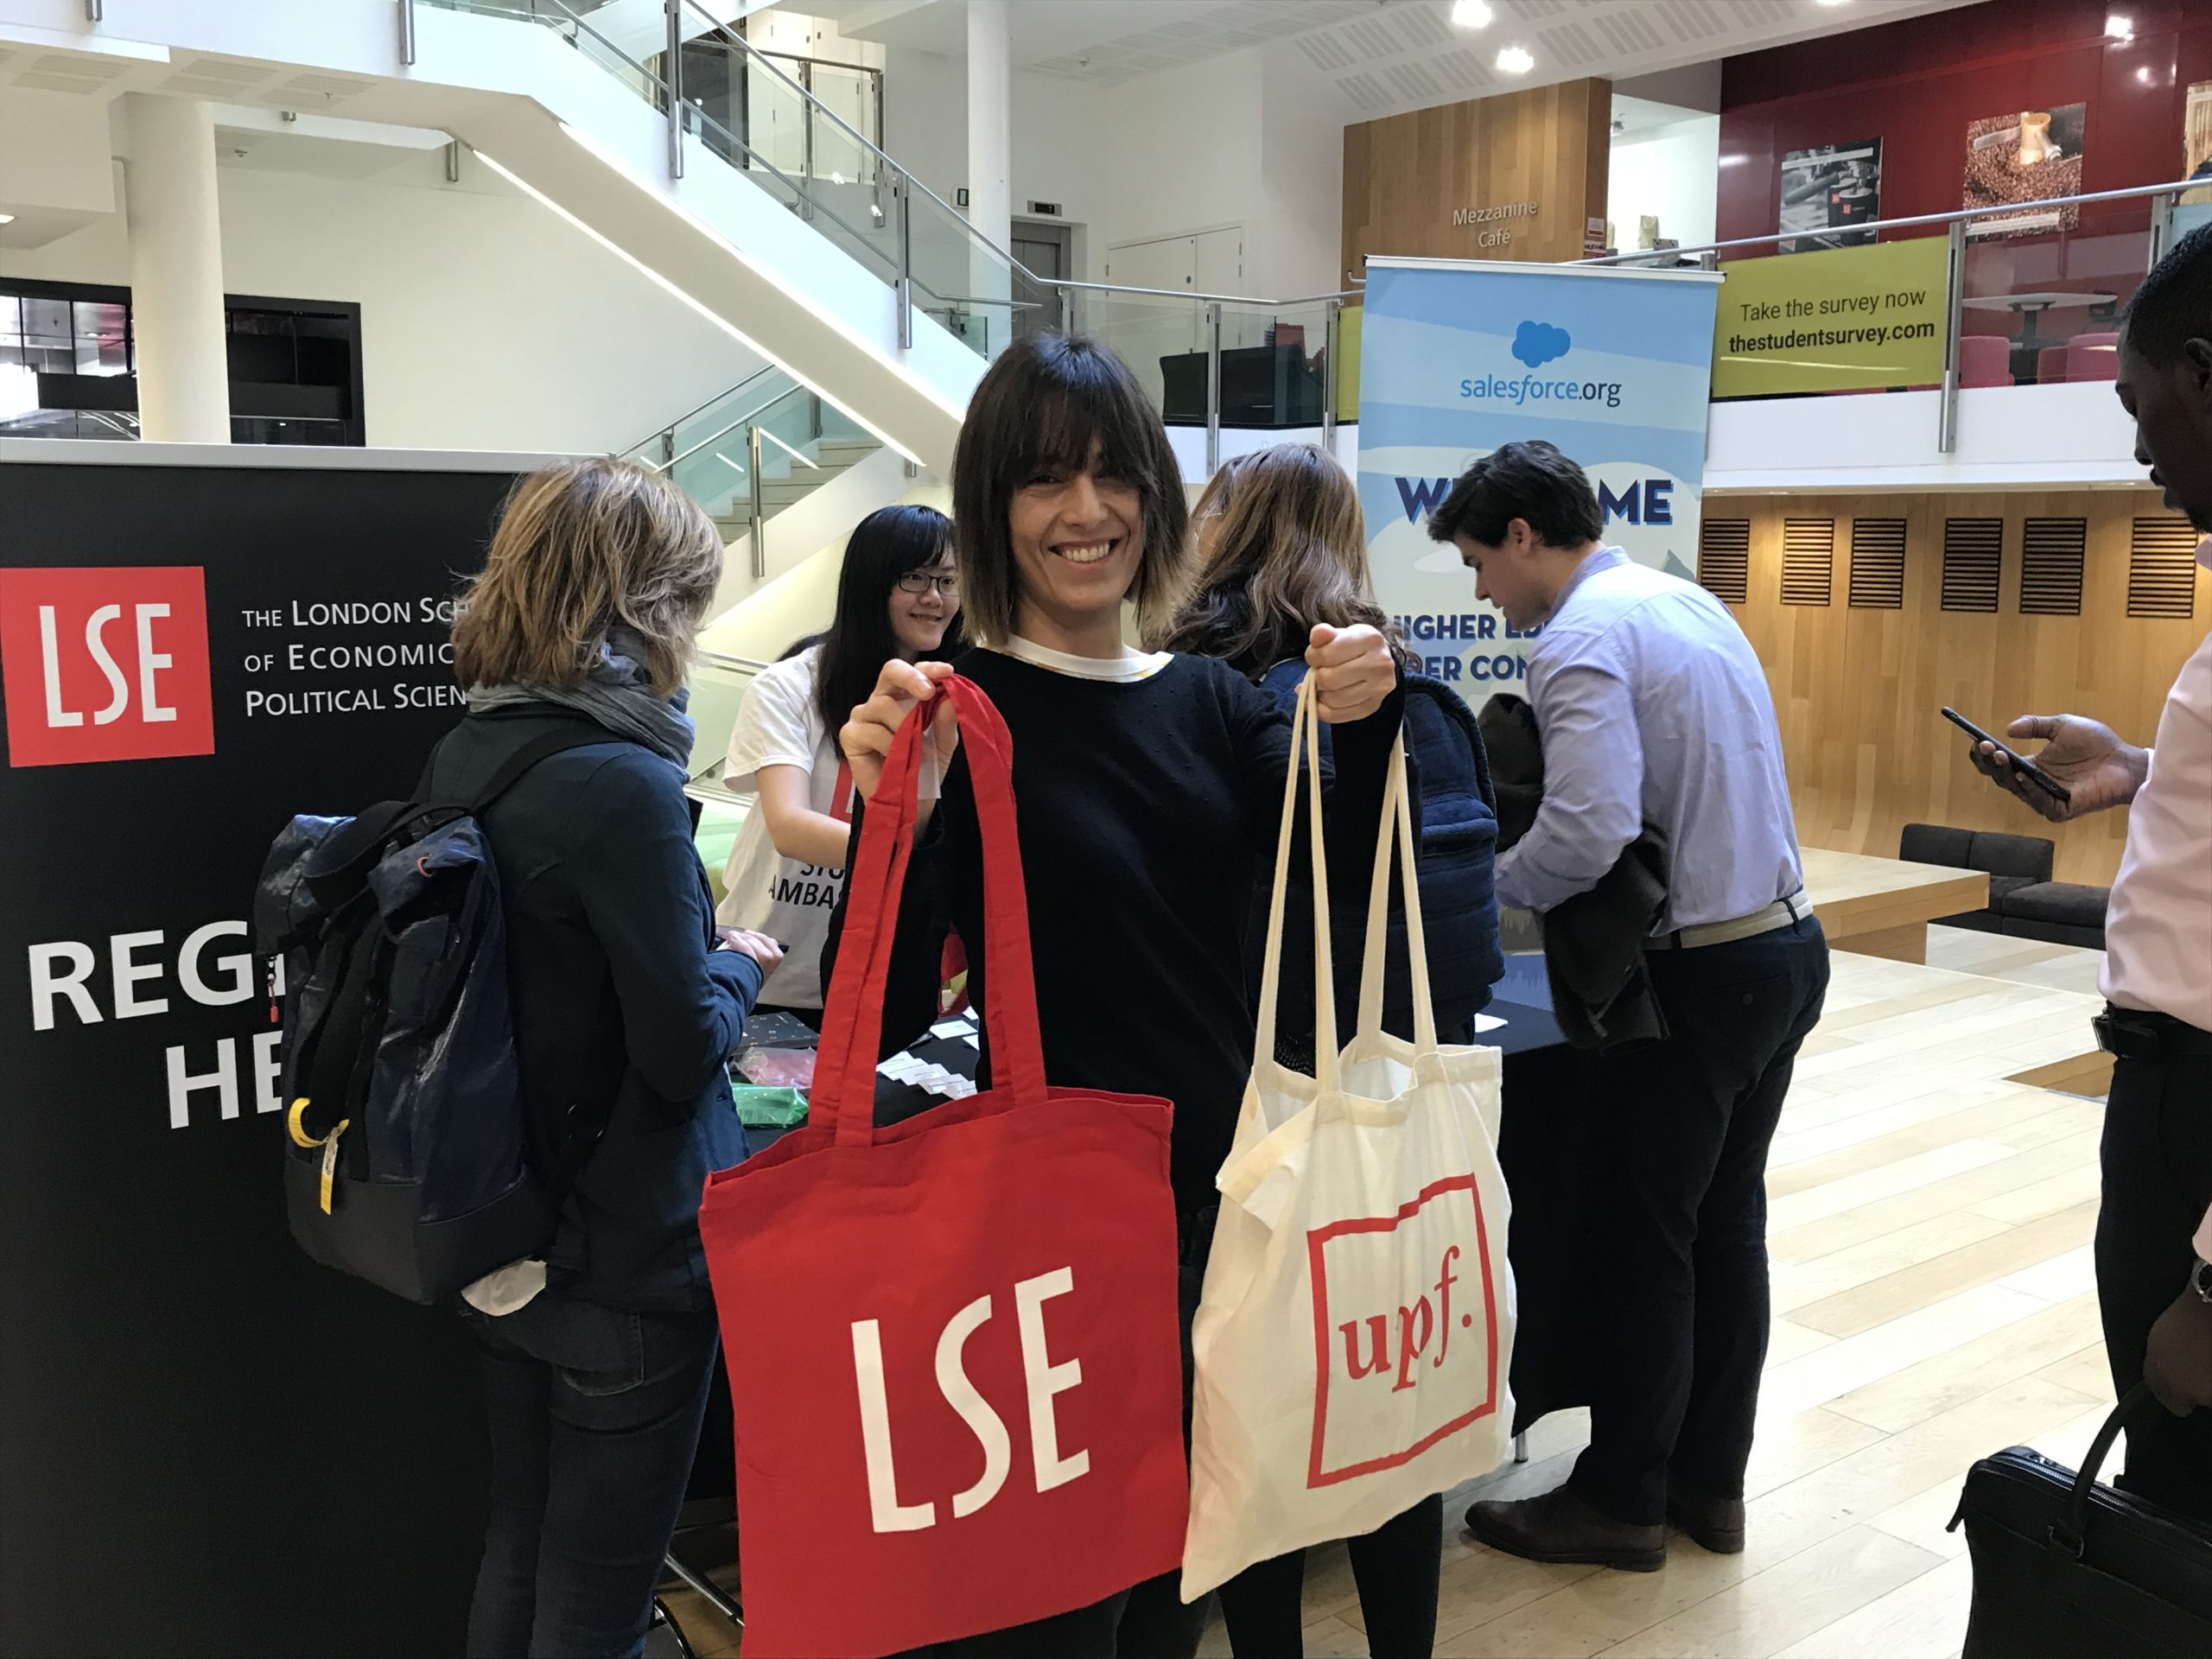 Salesforce.org higher ed user conference LSE